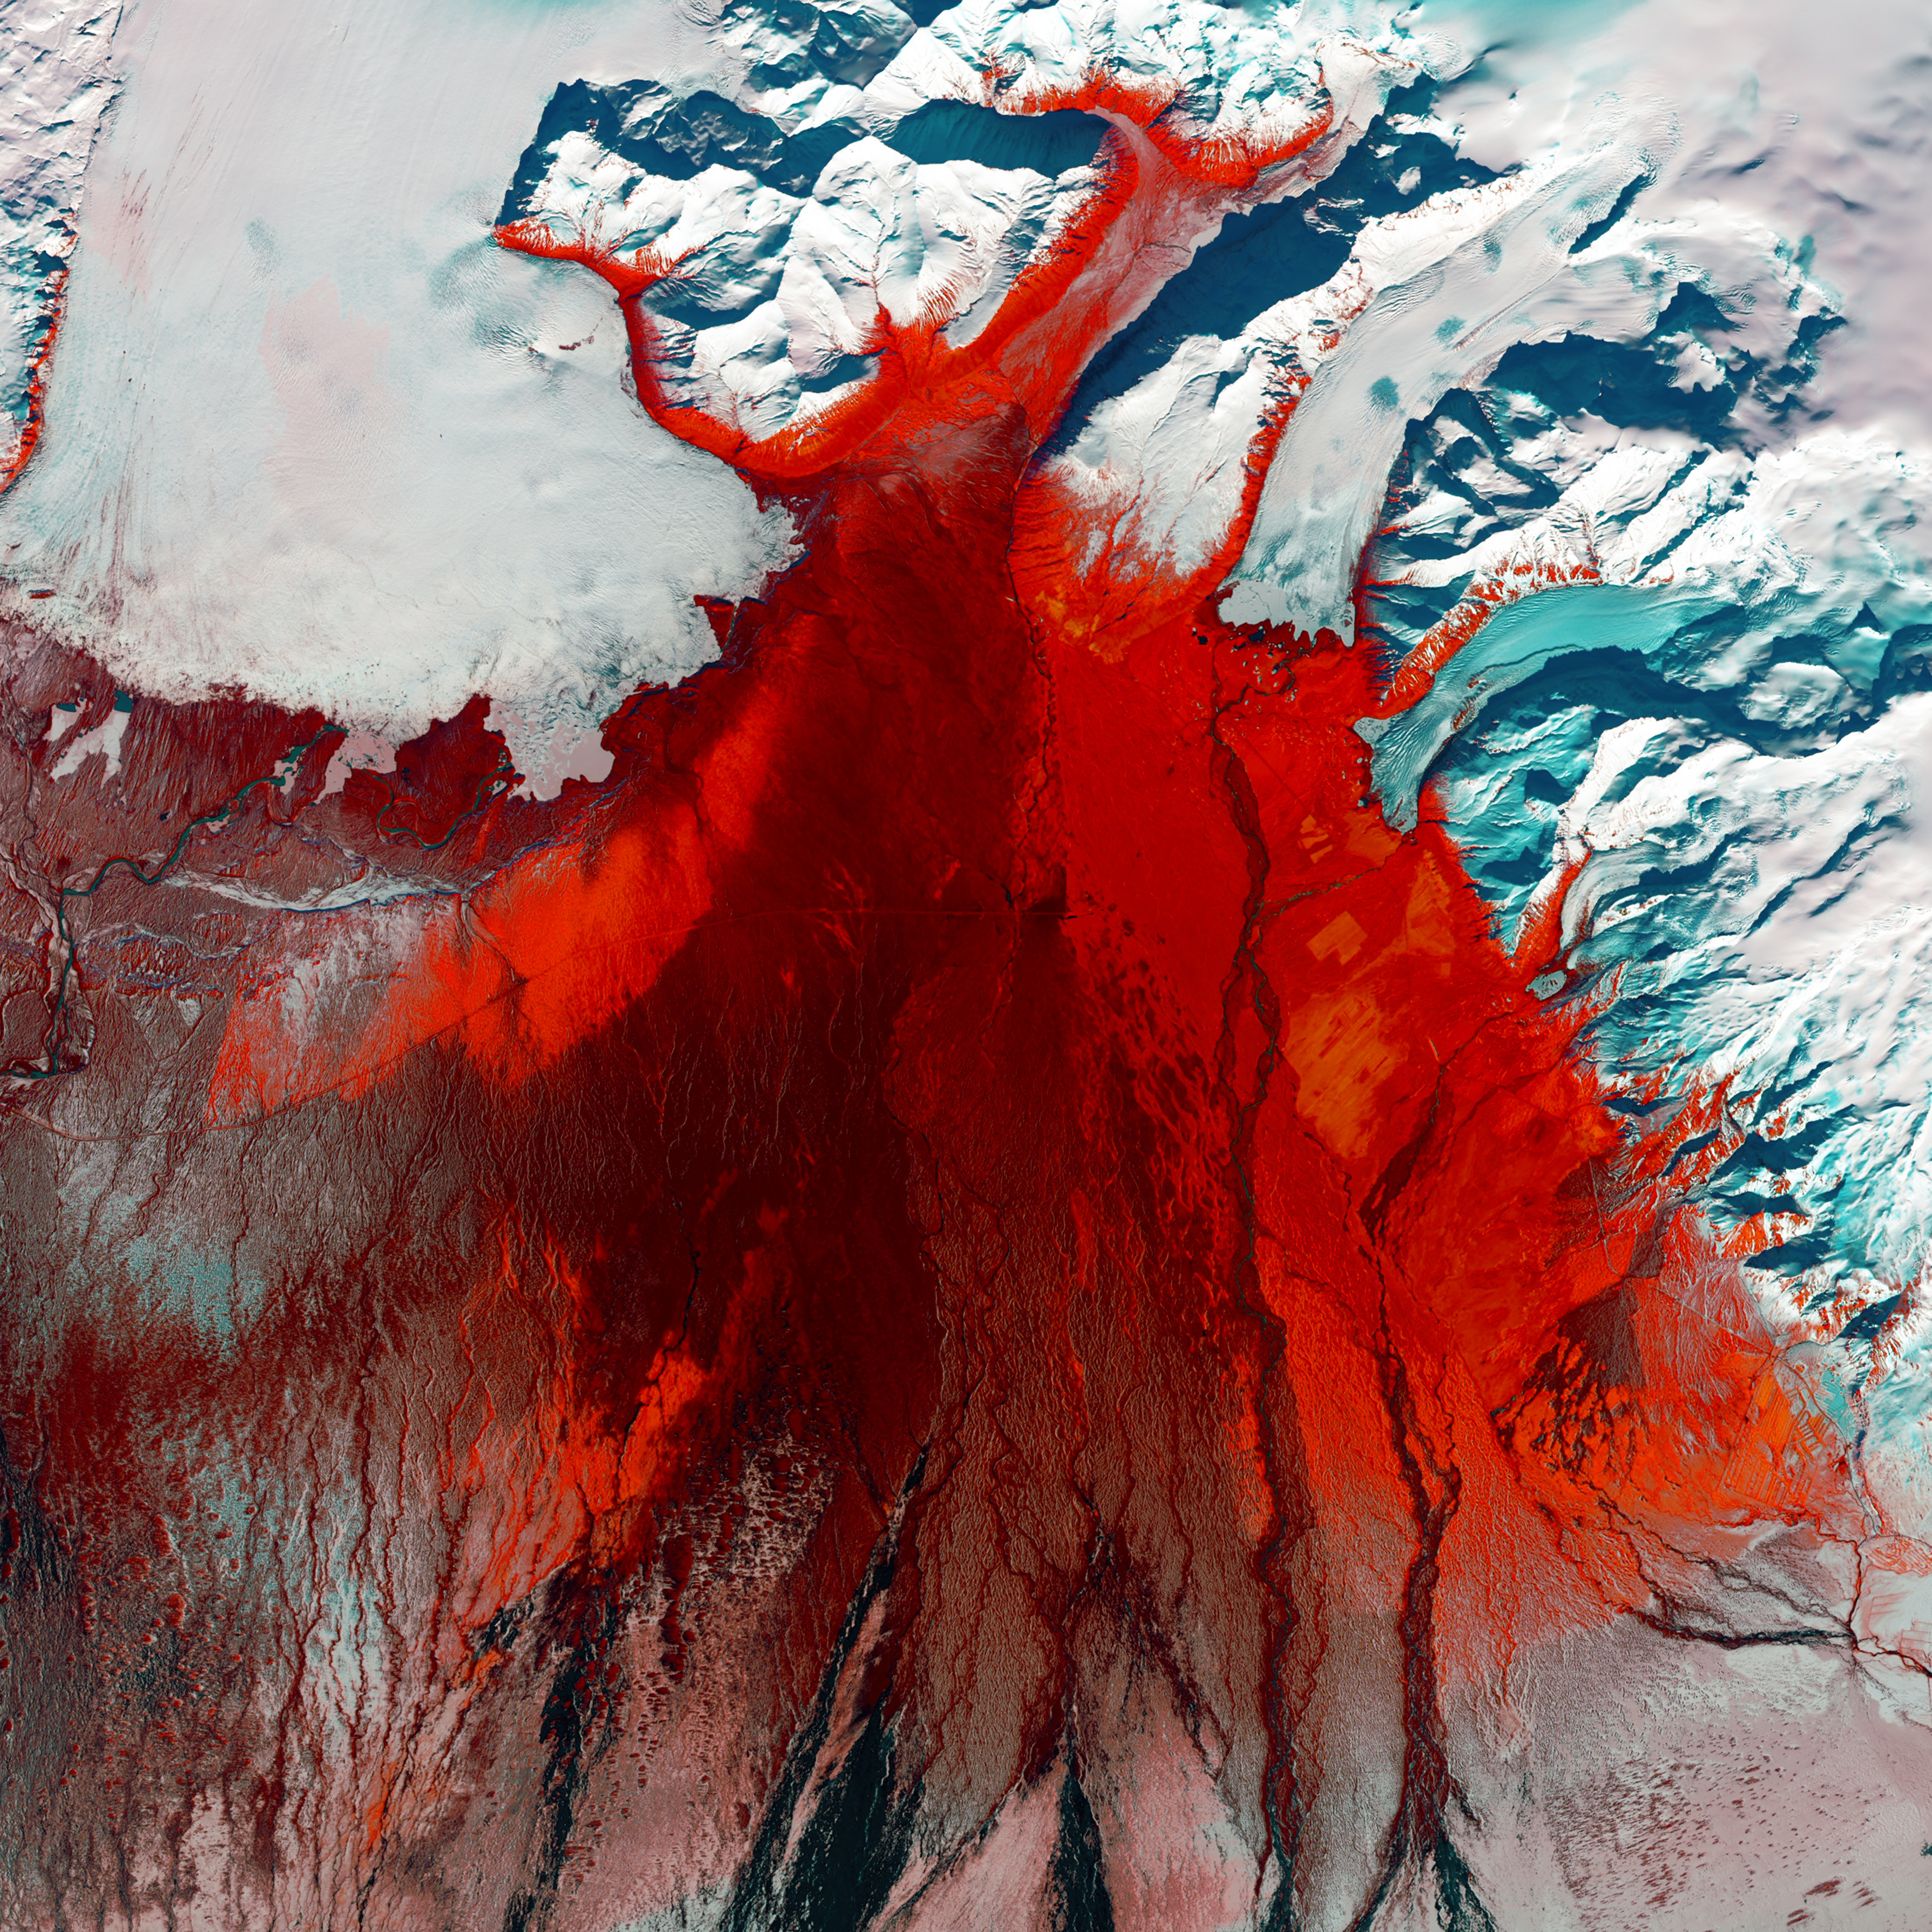 Red and black seem to mar the icy glacial landscape of southern Iceland. The grey-black filaments are past glacial melting outbursts called jökulhlaups. These abrupt flooding events gush down this outwash plain called Skeiðarársandur, one of the world's largest. The Skeiðarárjökull Glacier reaches down from the top left of the image. The plain is mostly devoid of vegetation, but red colouring indicates low moss, birch shrub, and other grass species.